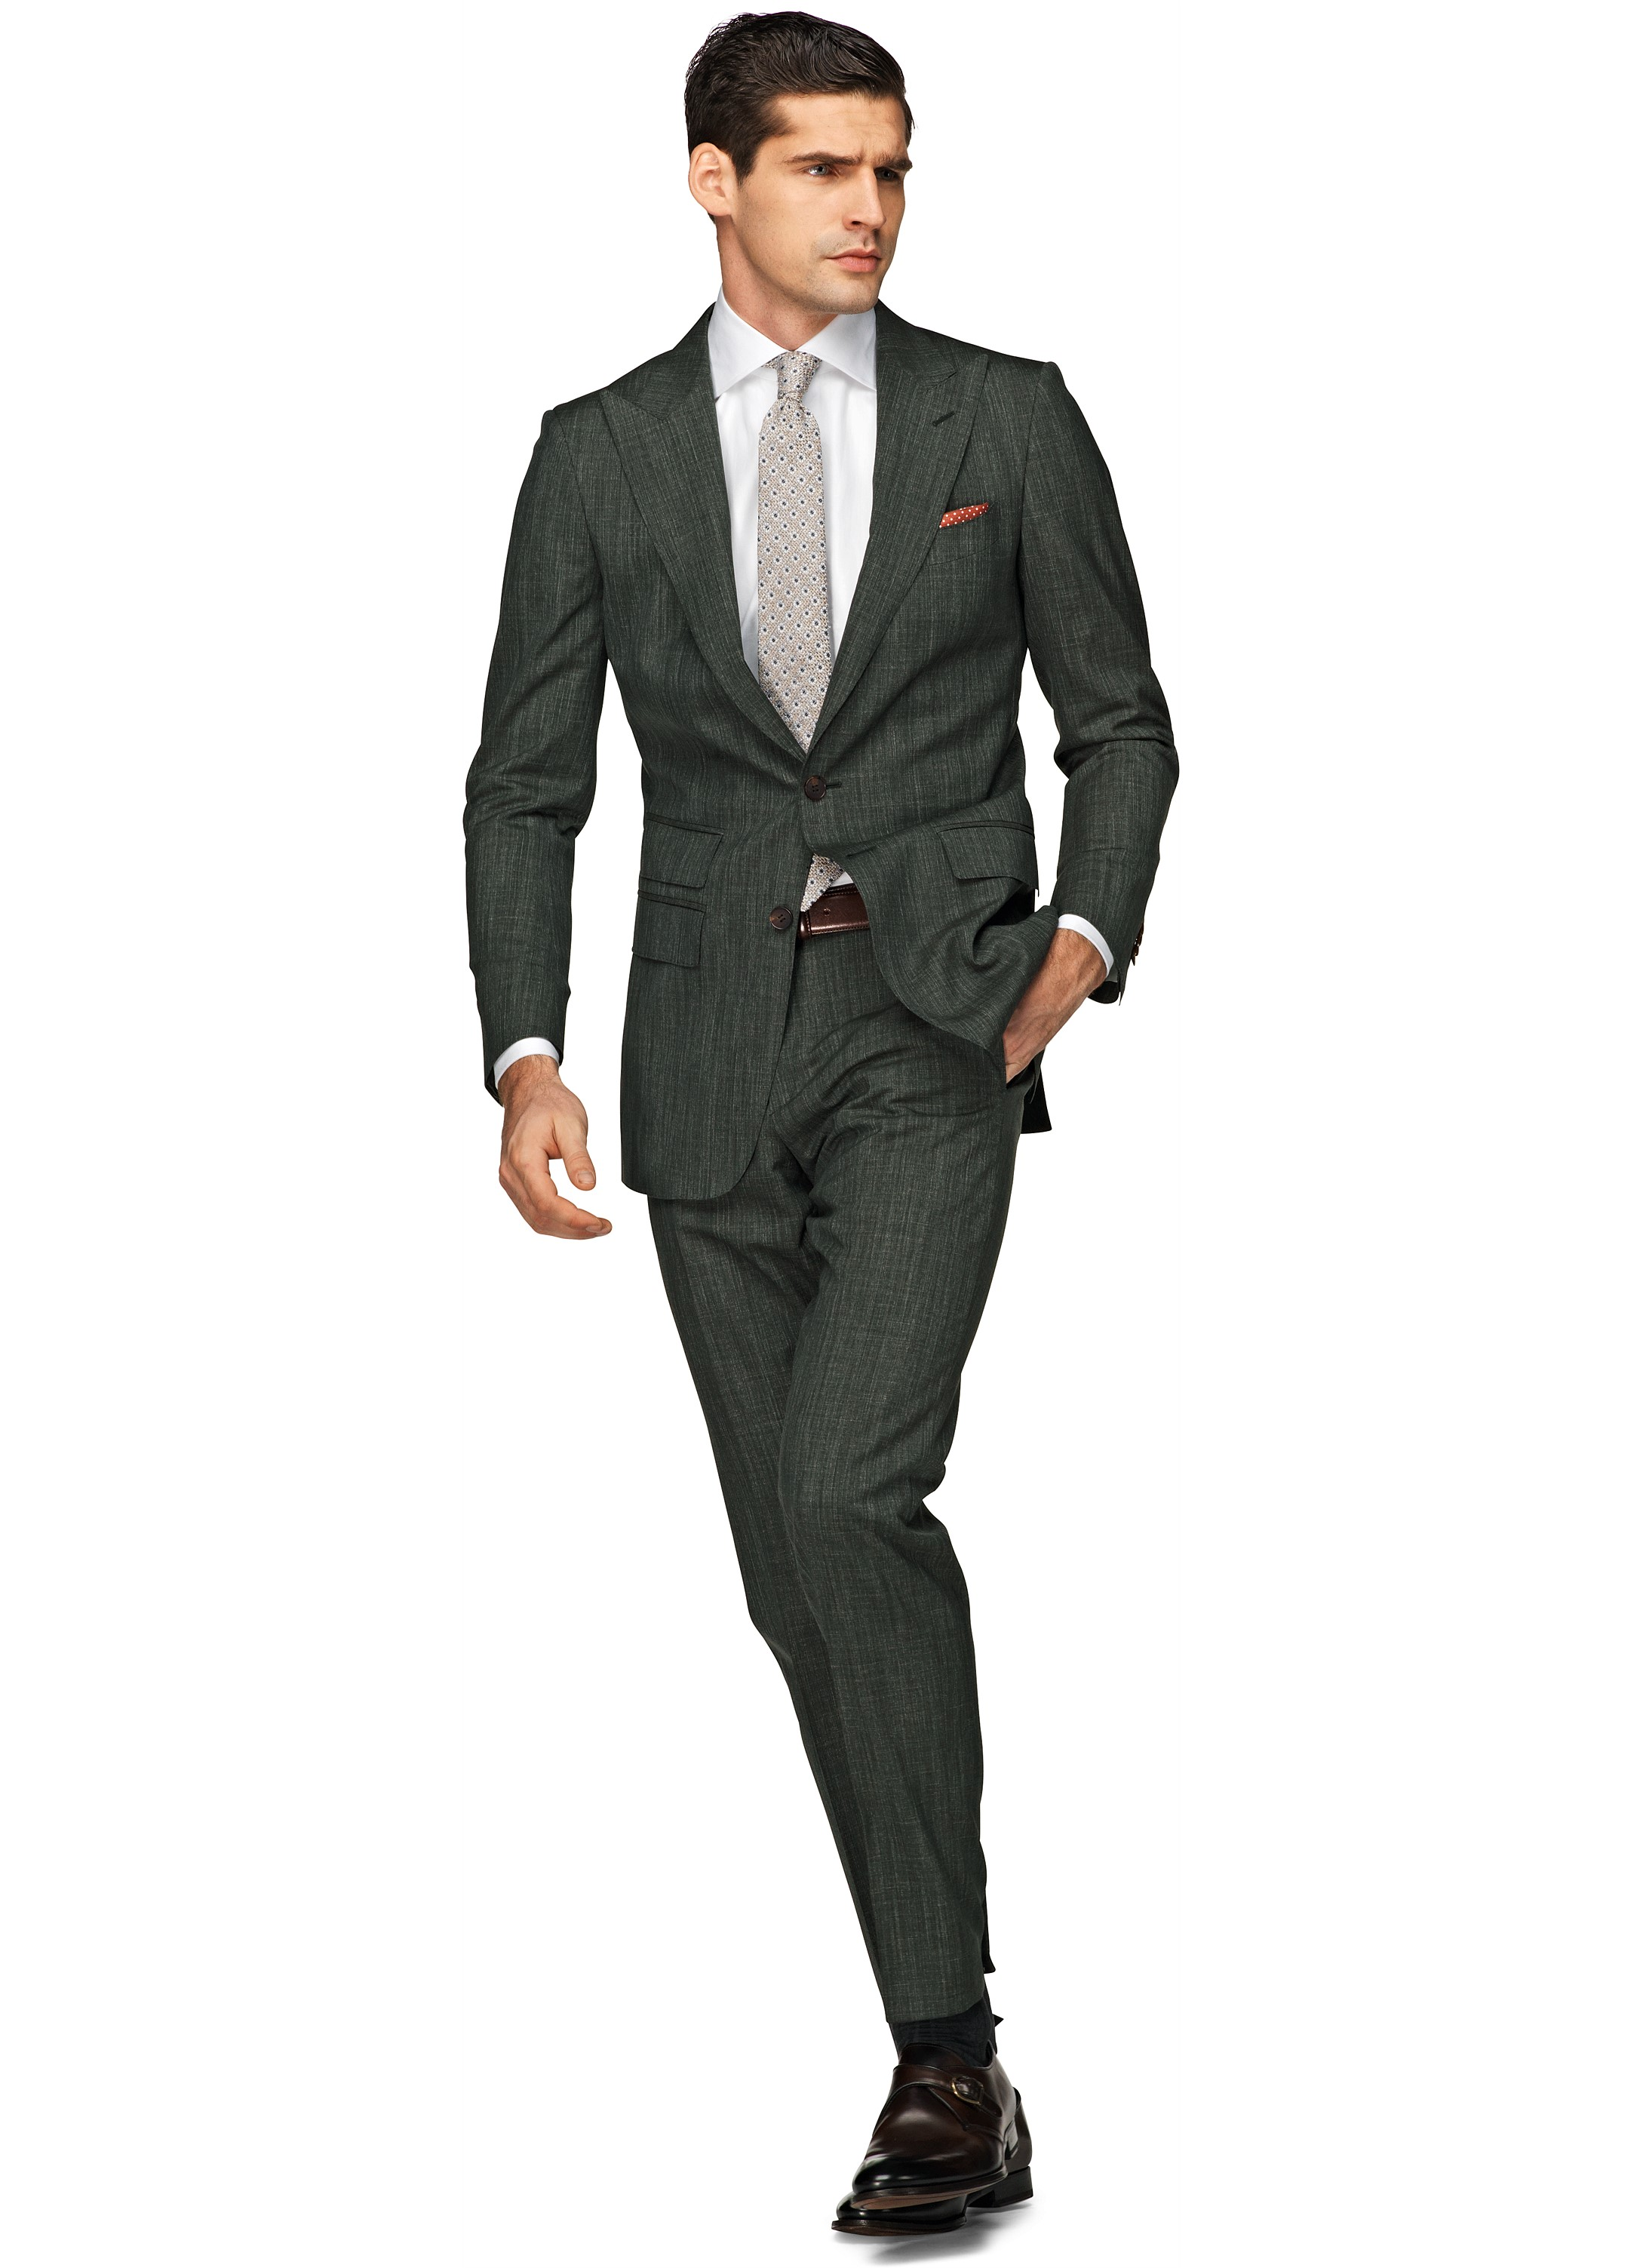 Whether you're shopping for a classic navy suit or black suit, a perfect dress suit or business suit, style isn't one-size-fits-all. Traditional Fit Tailored Fit Slim Fit. Suits All Suits & Suit Separates Suits Suit Separates Boys Suit Separates Tuxedos Custom Clothing FIT Slim Fit Suits.